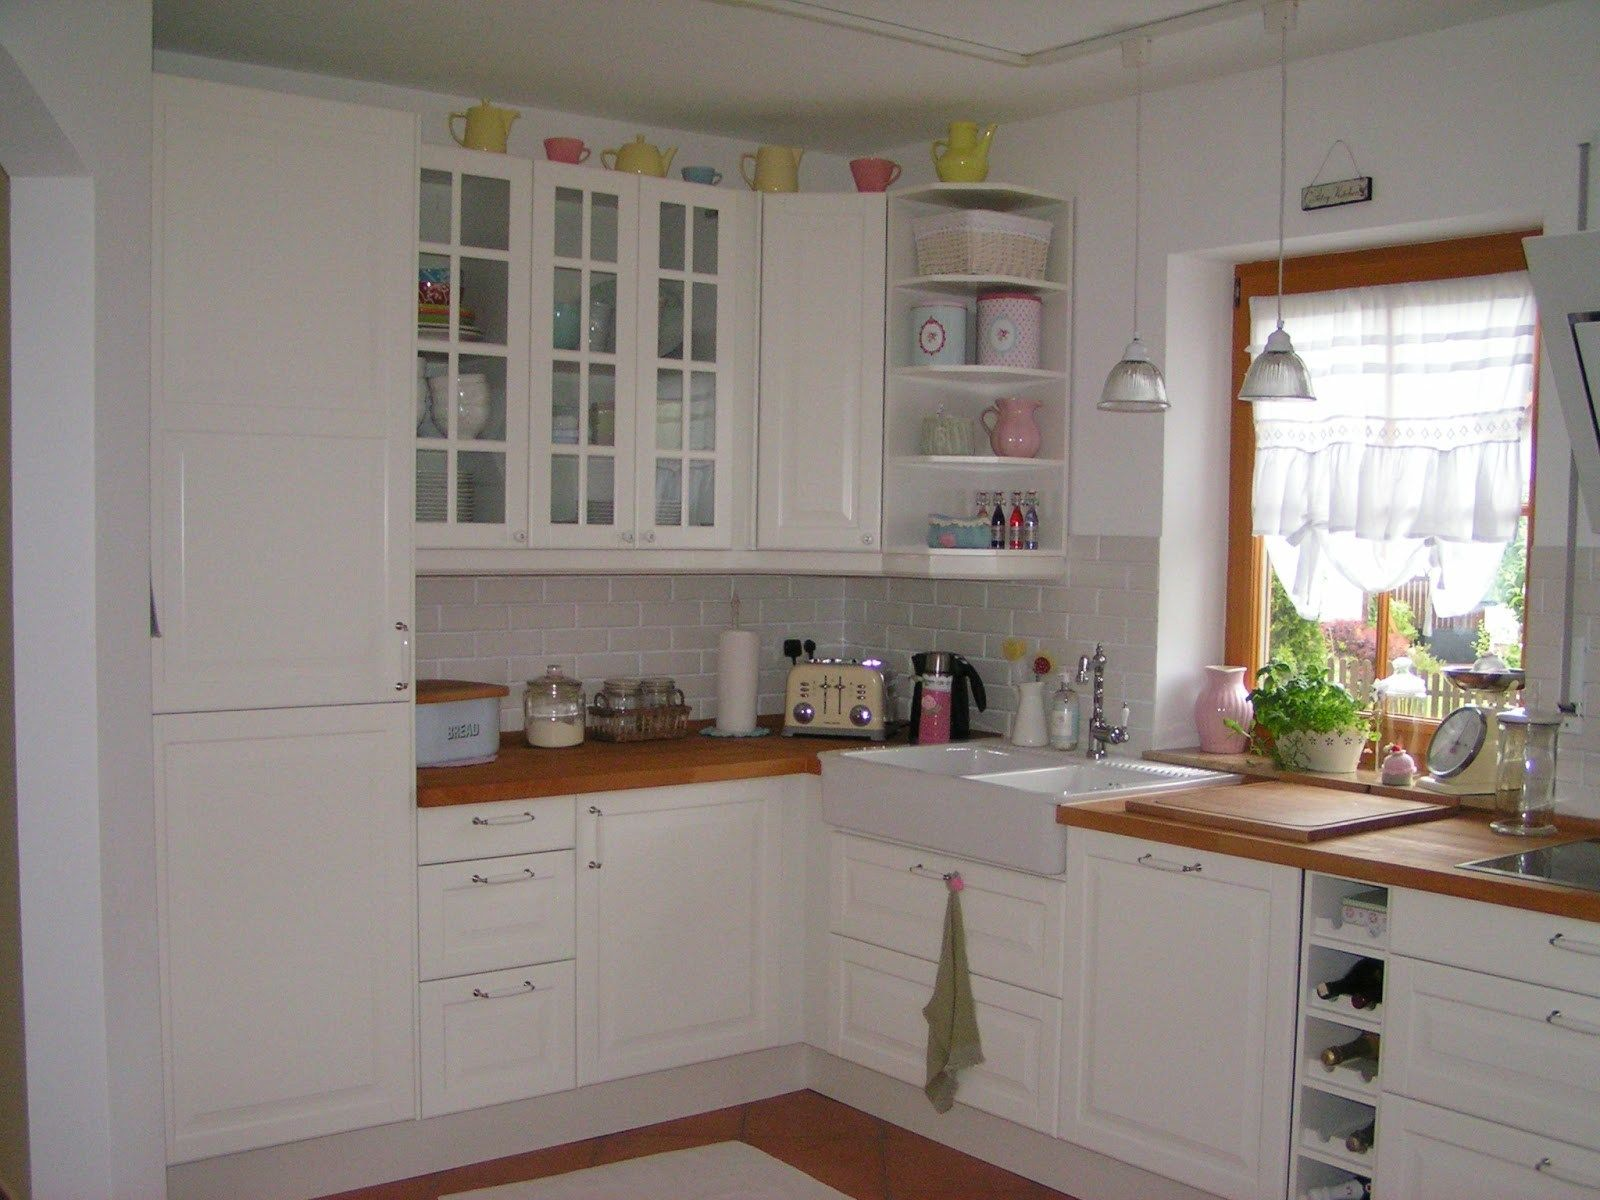 Küche Ikea Eckschrank Bodbyn Wei Ikea Kitchens Pinterest Küche In 2019 Ikea Kitchen